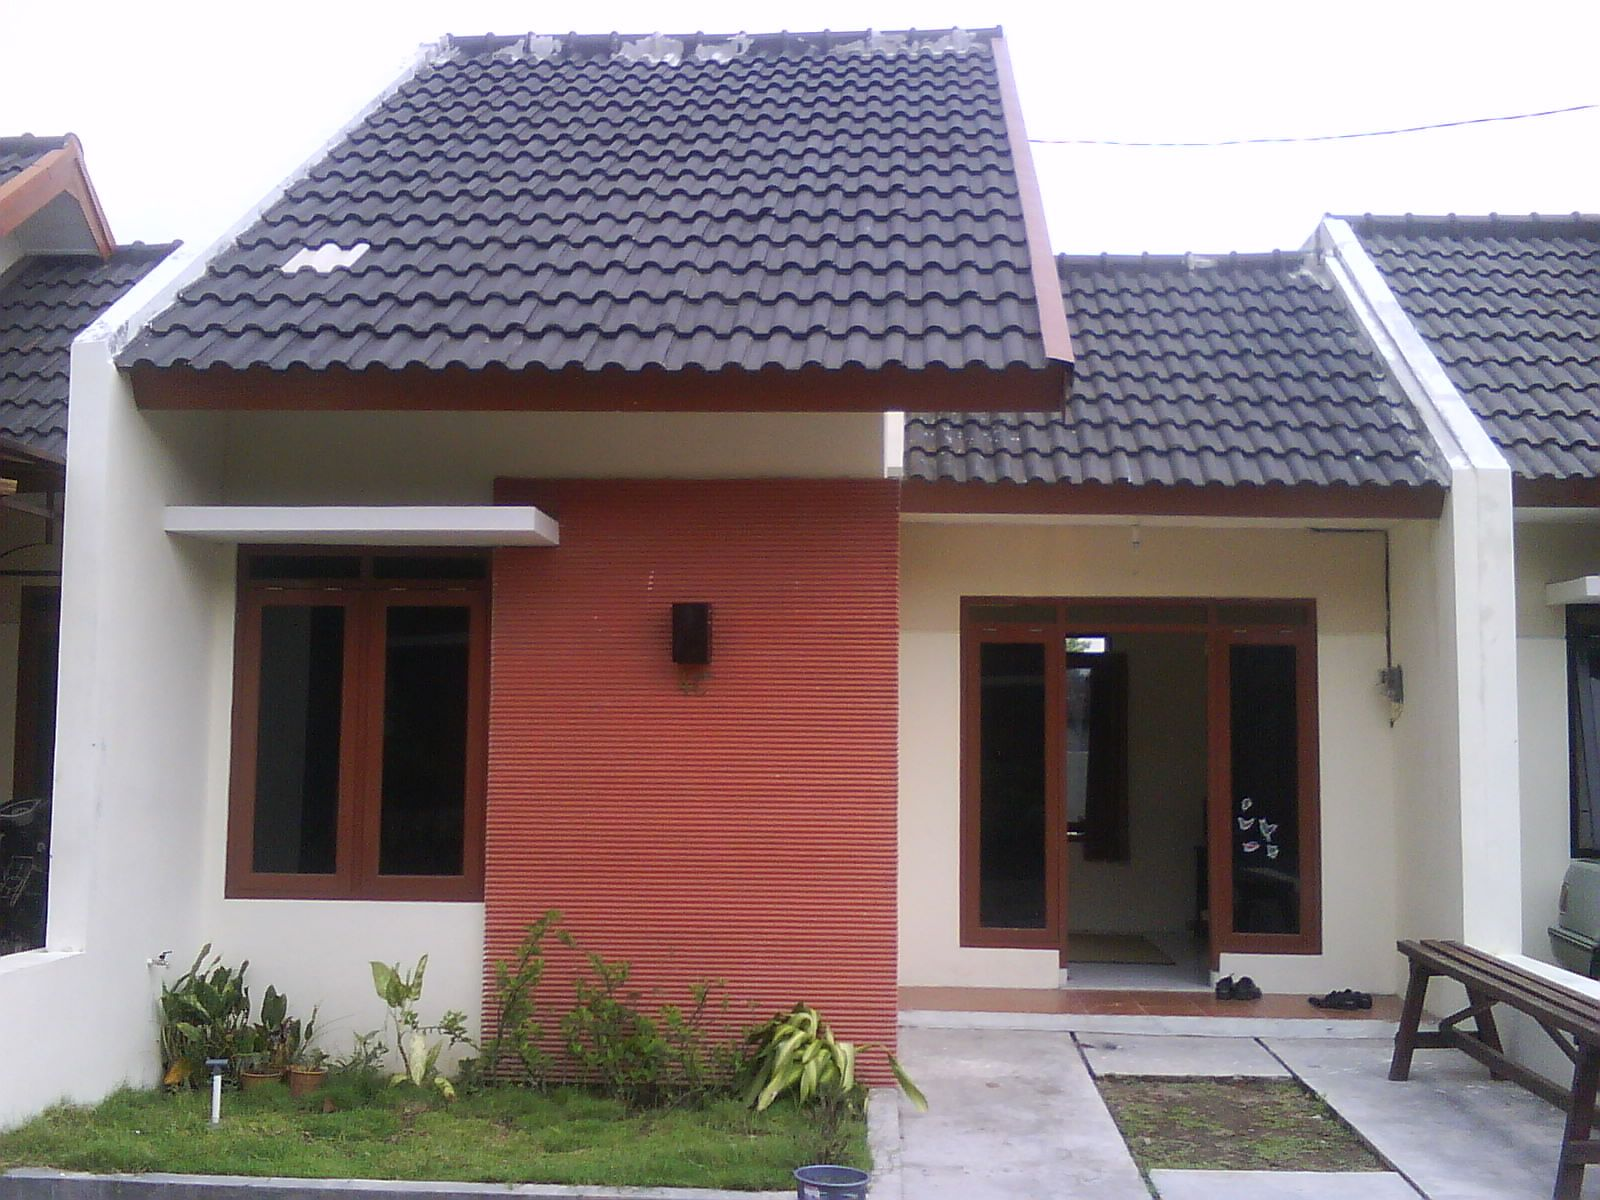 Rumah Minimalis Type 36 60 Nulis In 2020 One Storey House Facade House Small House Design